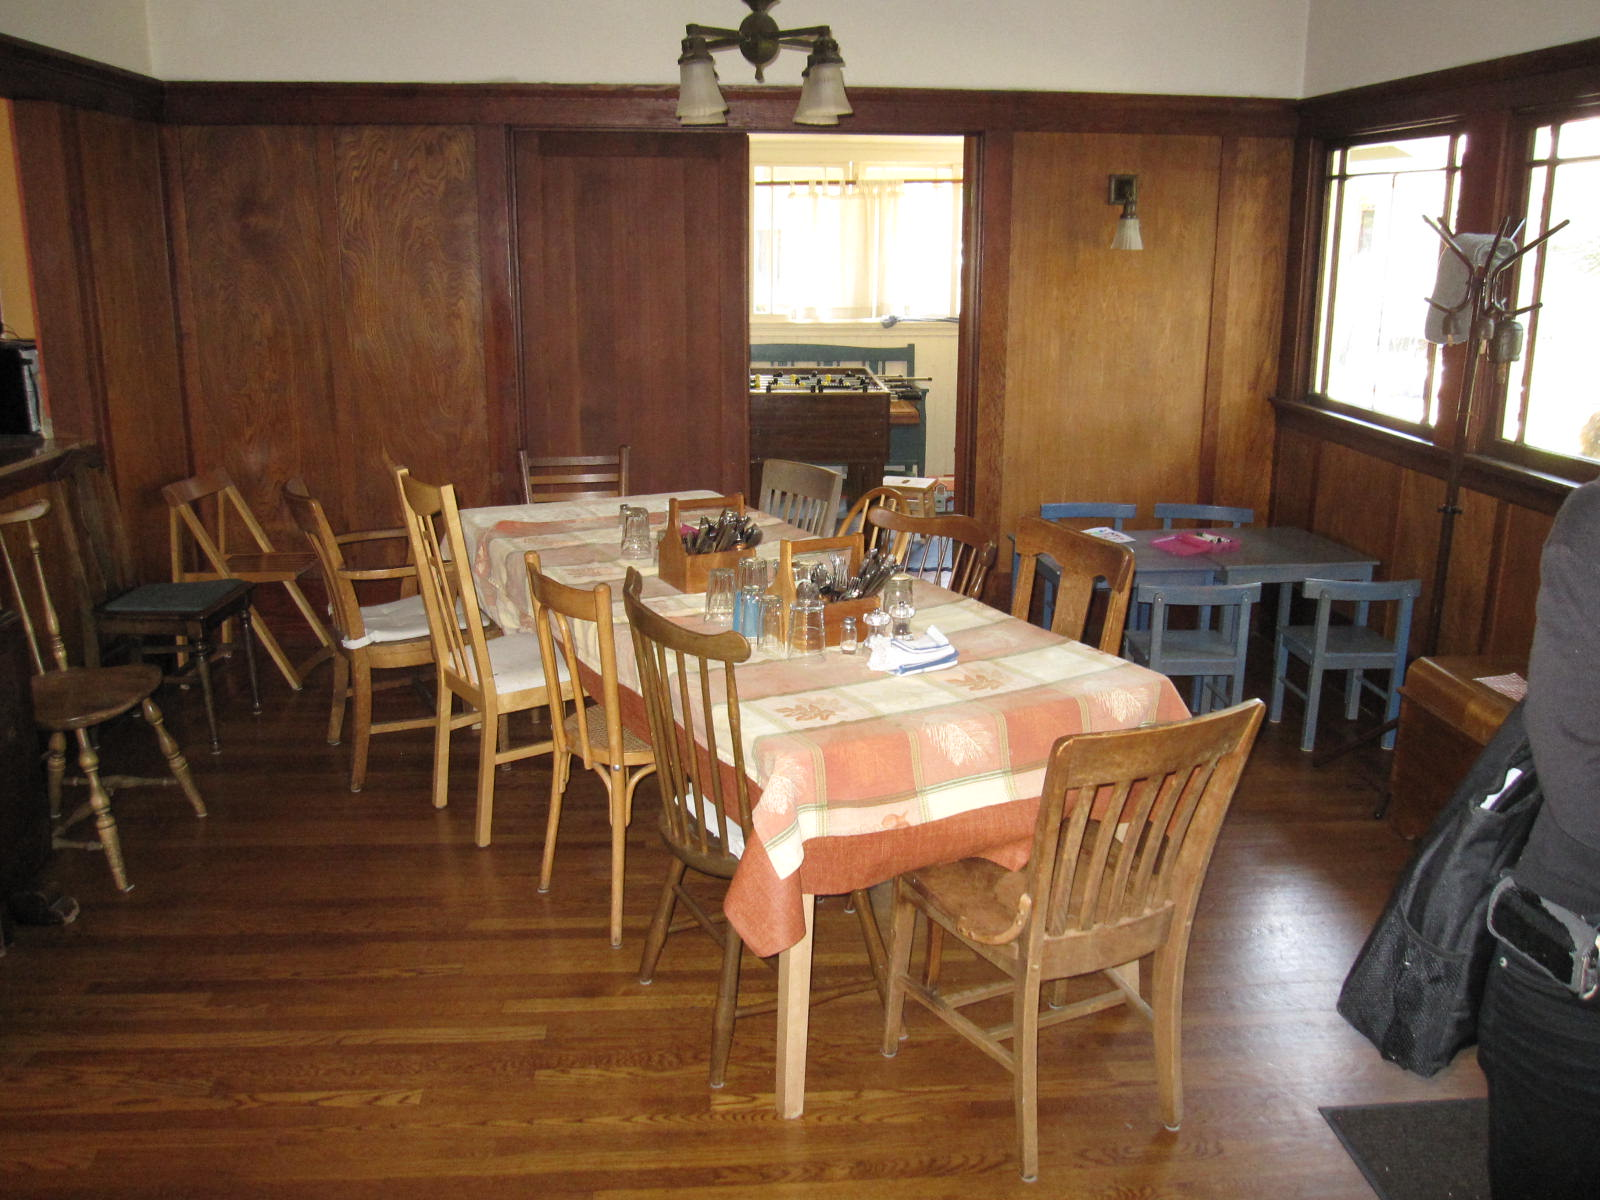 It 39 s a co op national cohousing conference 2012 part one for Tejas dining room at t conference center